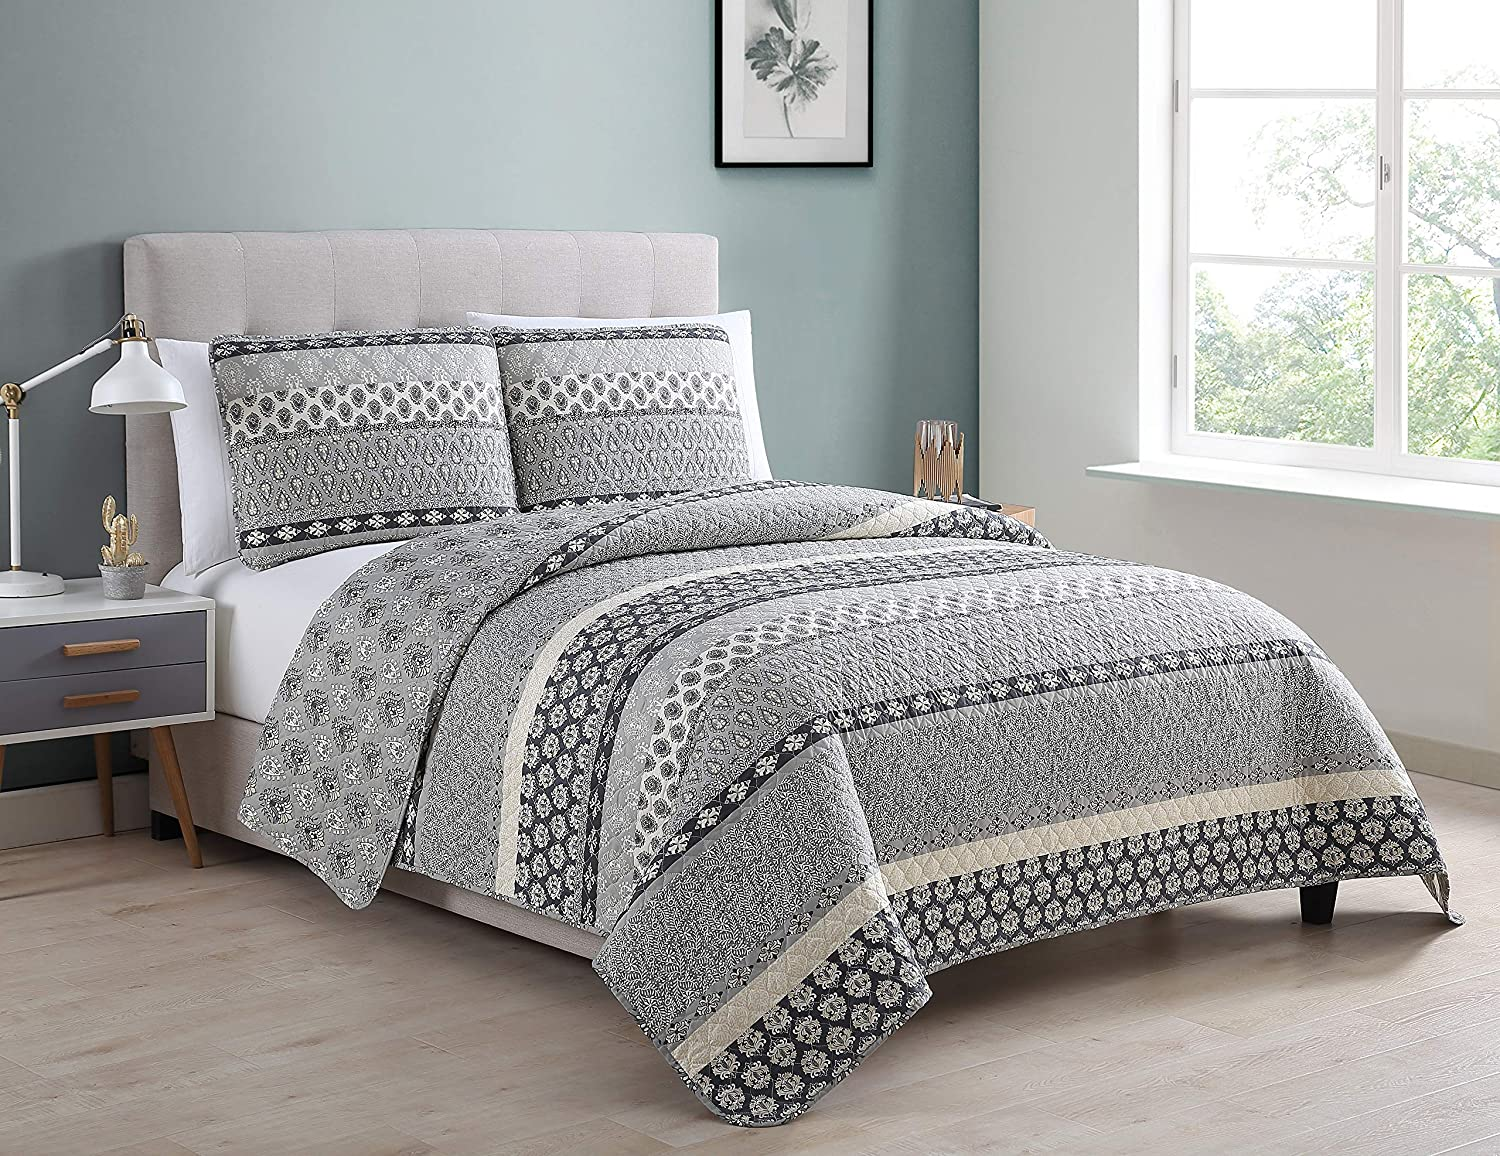 Morgan Home Printed 3 Piece Reversible Quilt Set with Shams – All Season Comfort, Available in, Colors & Sizes (Grey, Twin)